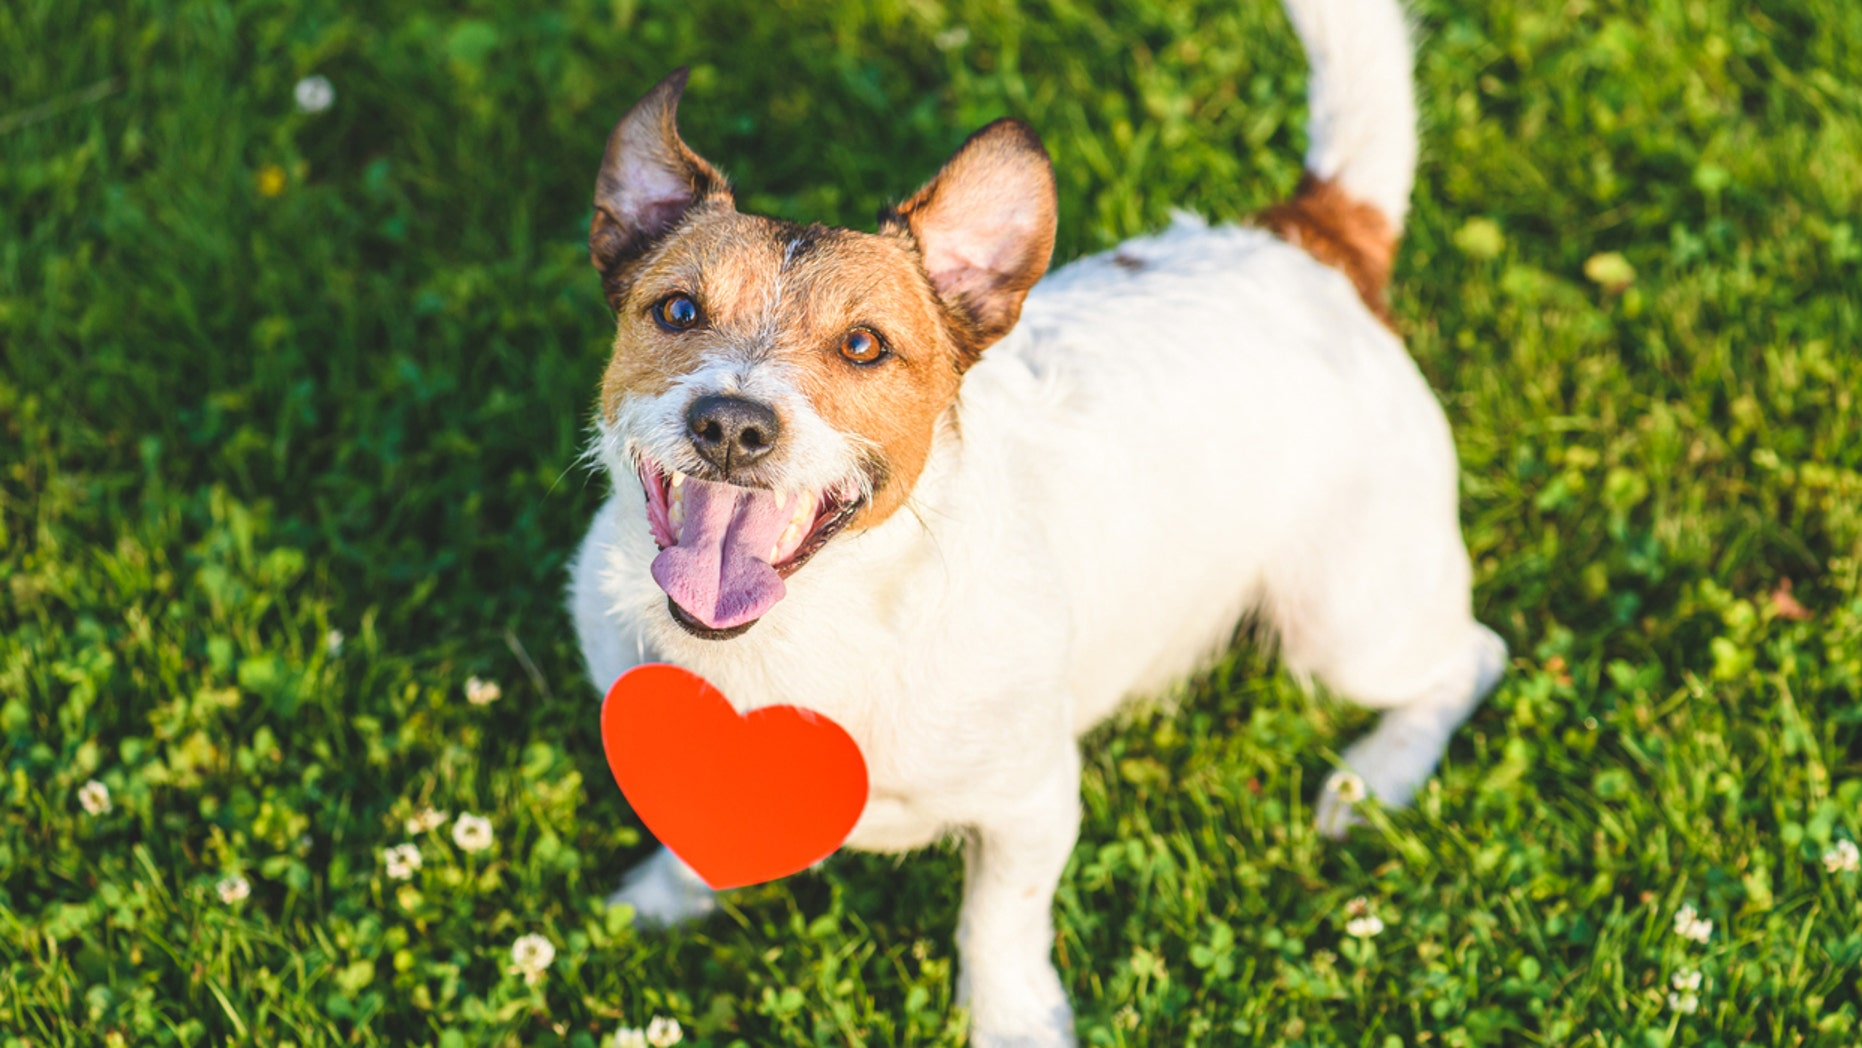 Pet dating site 'Pinder' -- based on human dating app Tinder -- helps owners find friends for their pets. (iStock)